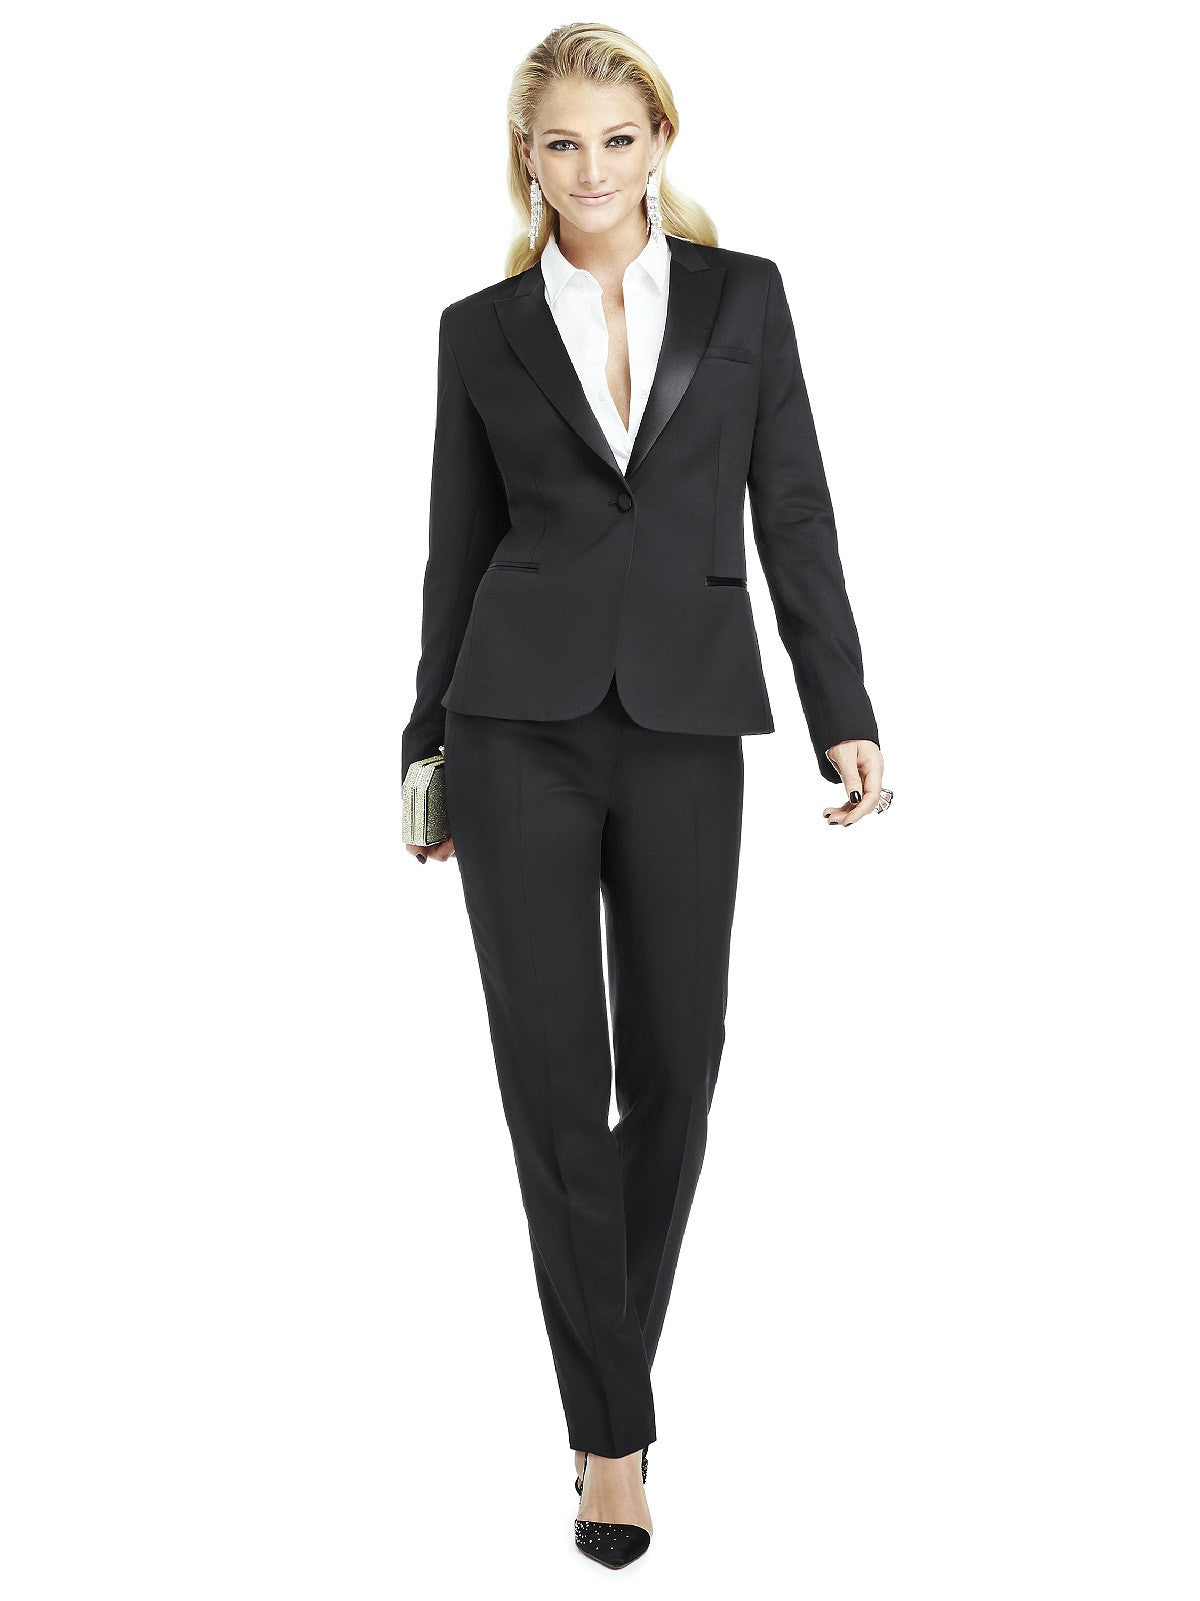 After Six Style Marlowe Women's Tuxedo Jacket - Peak Collar